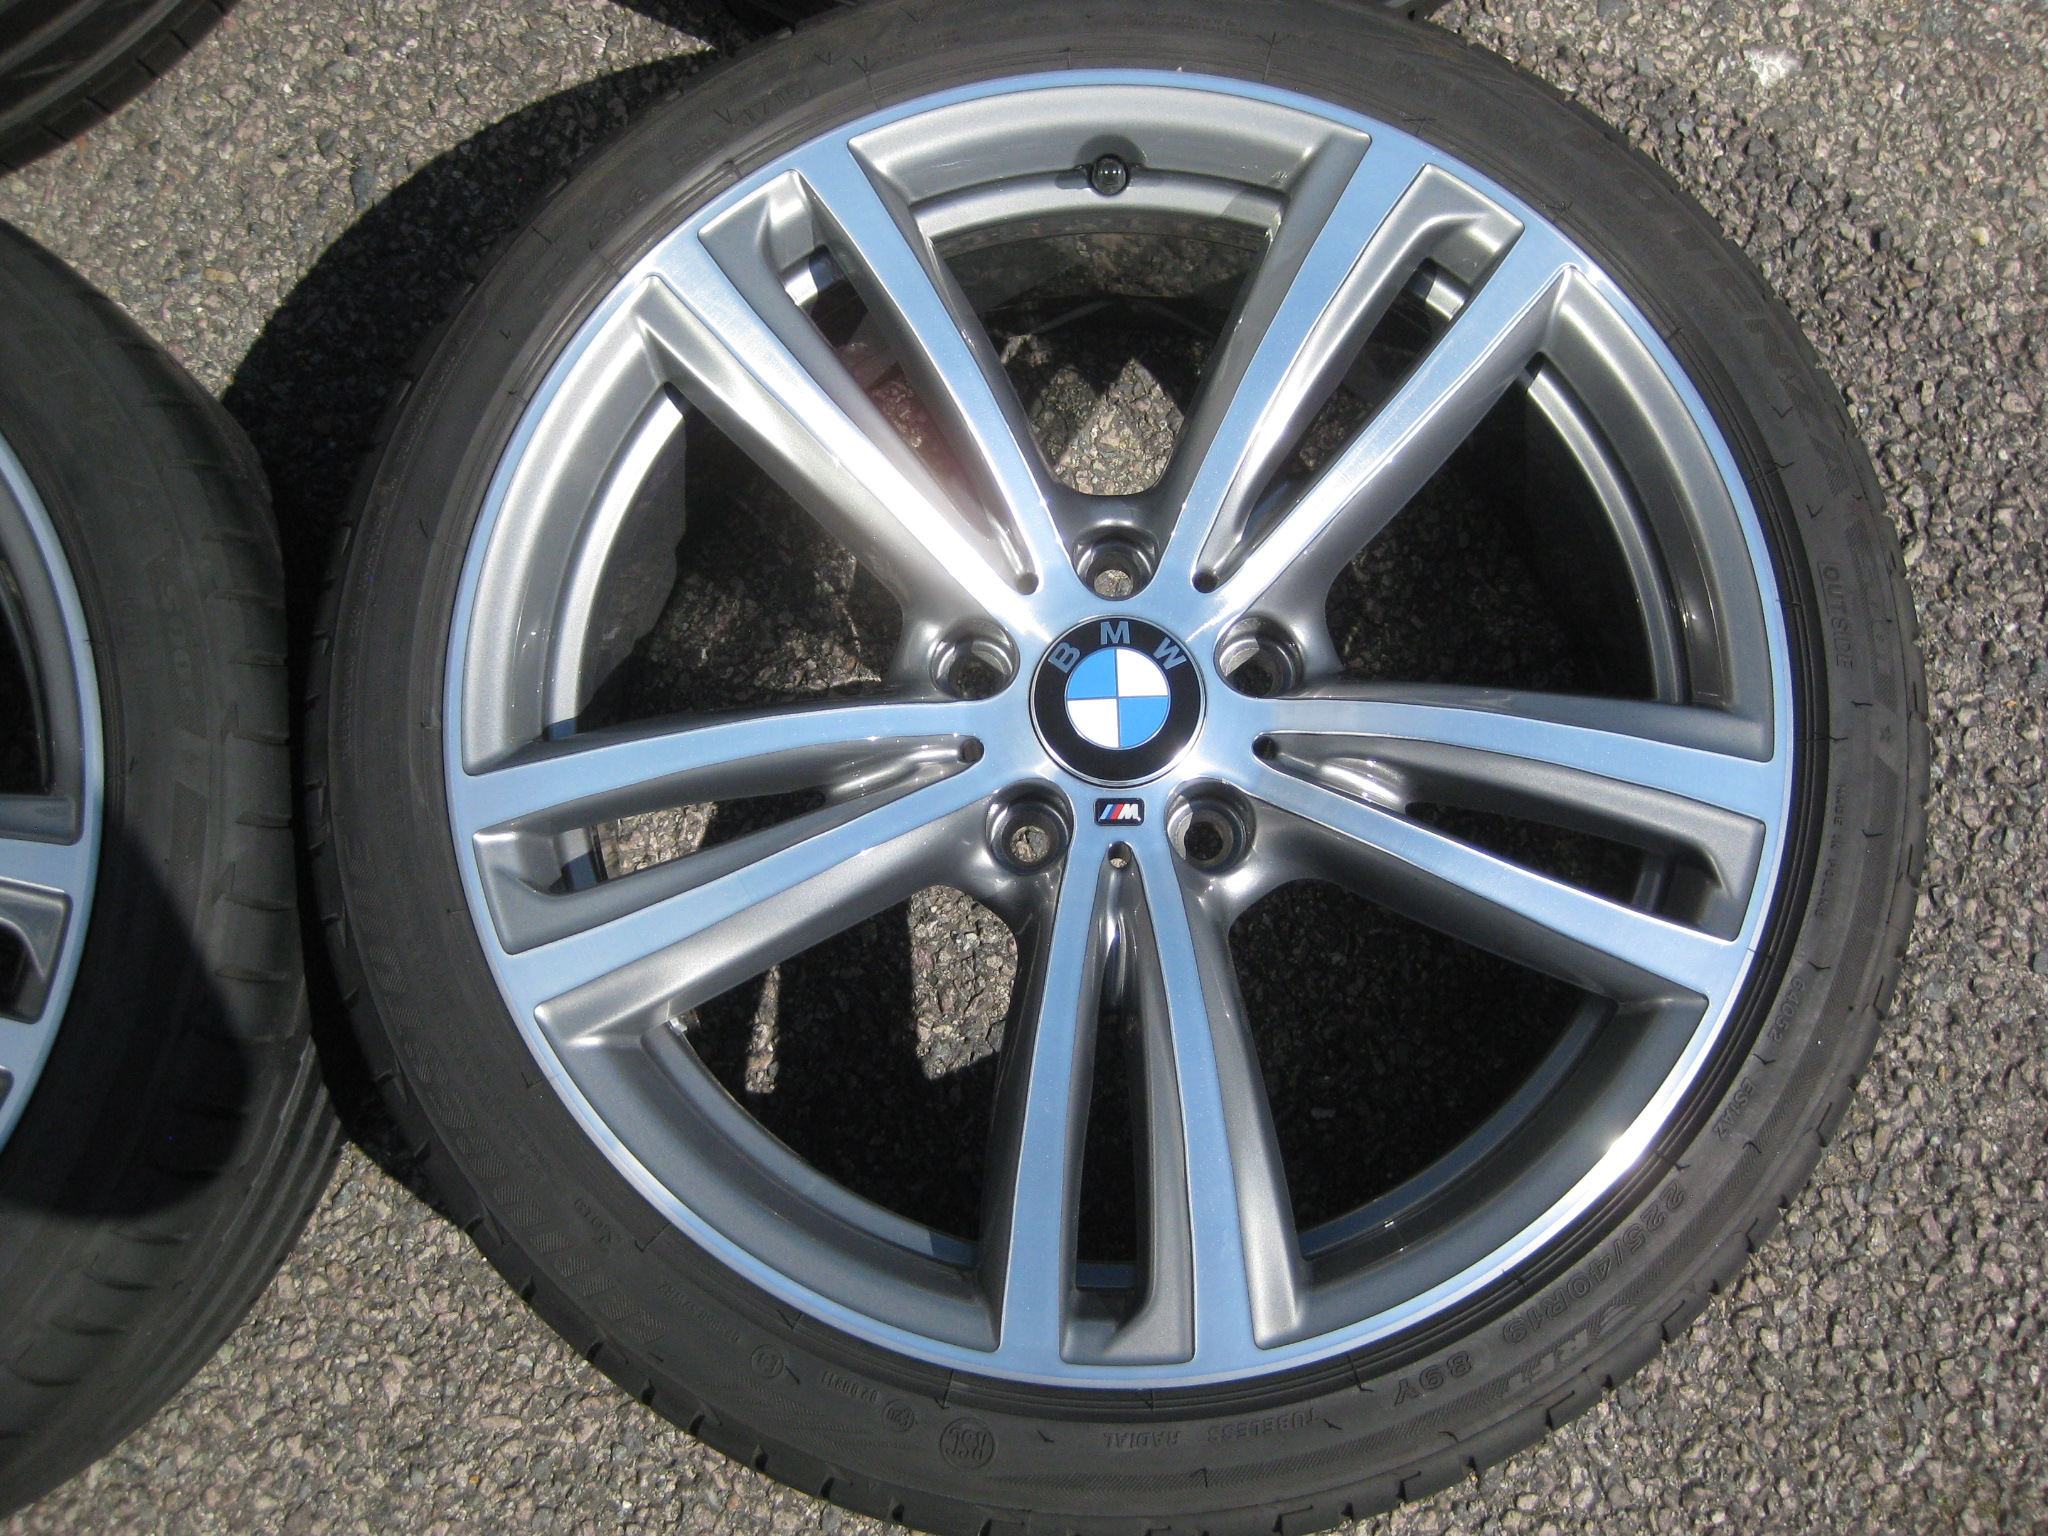 "USED 19"" GENUINE STYLE 442 F30/31 M DOUBLE 5 SPOKE ALLOY WHEELS, FULLY REFURB INC VERY GOOD BRIDGESTONE RUNFLATS"